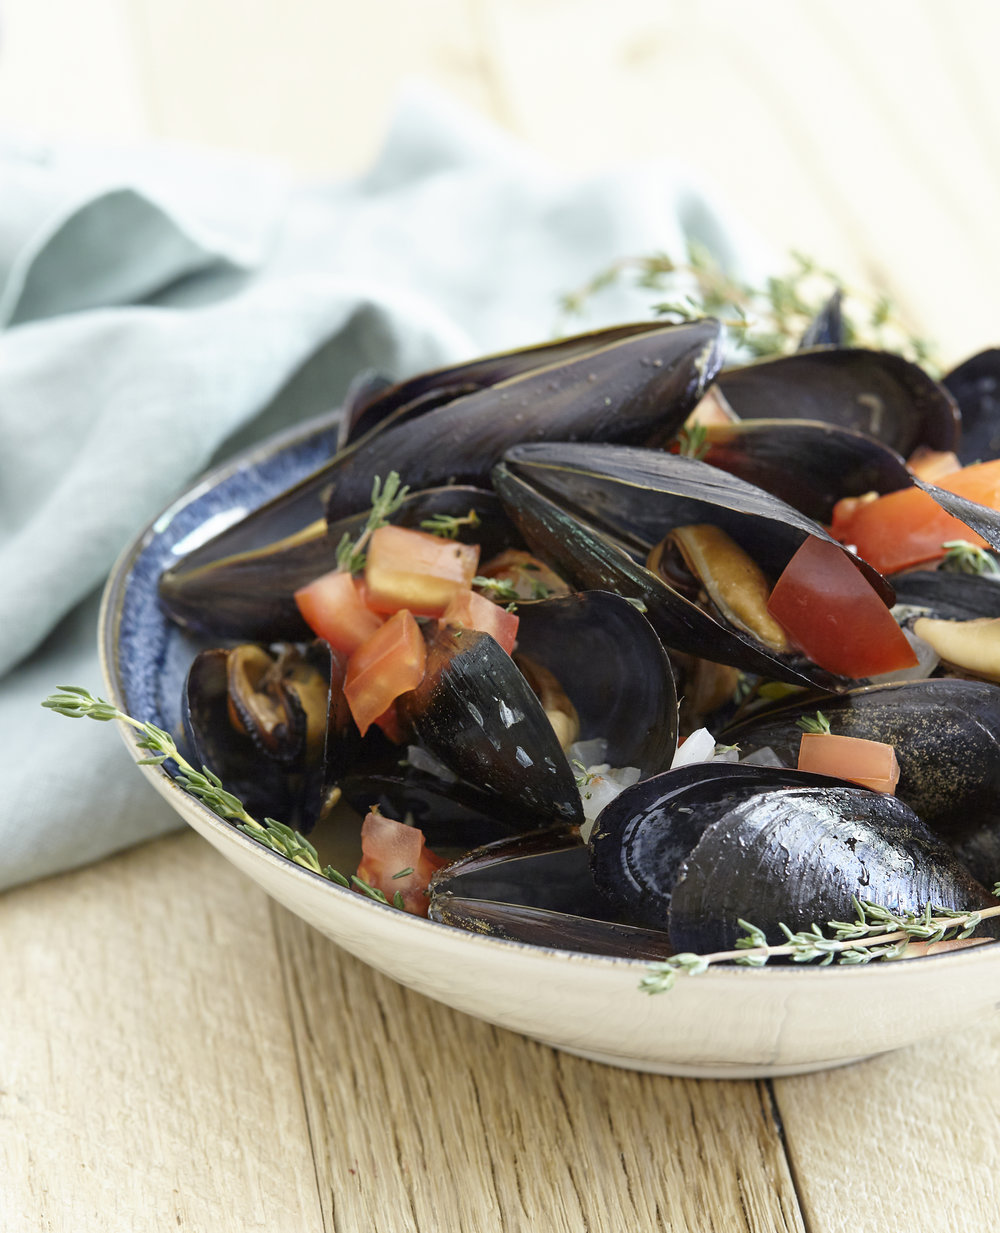 Steamed_Mussels_With_Garlic_Bacon_&_Butter.jpg